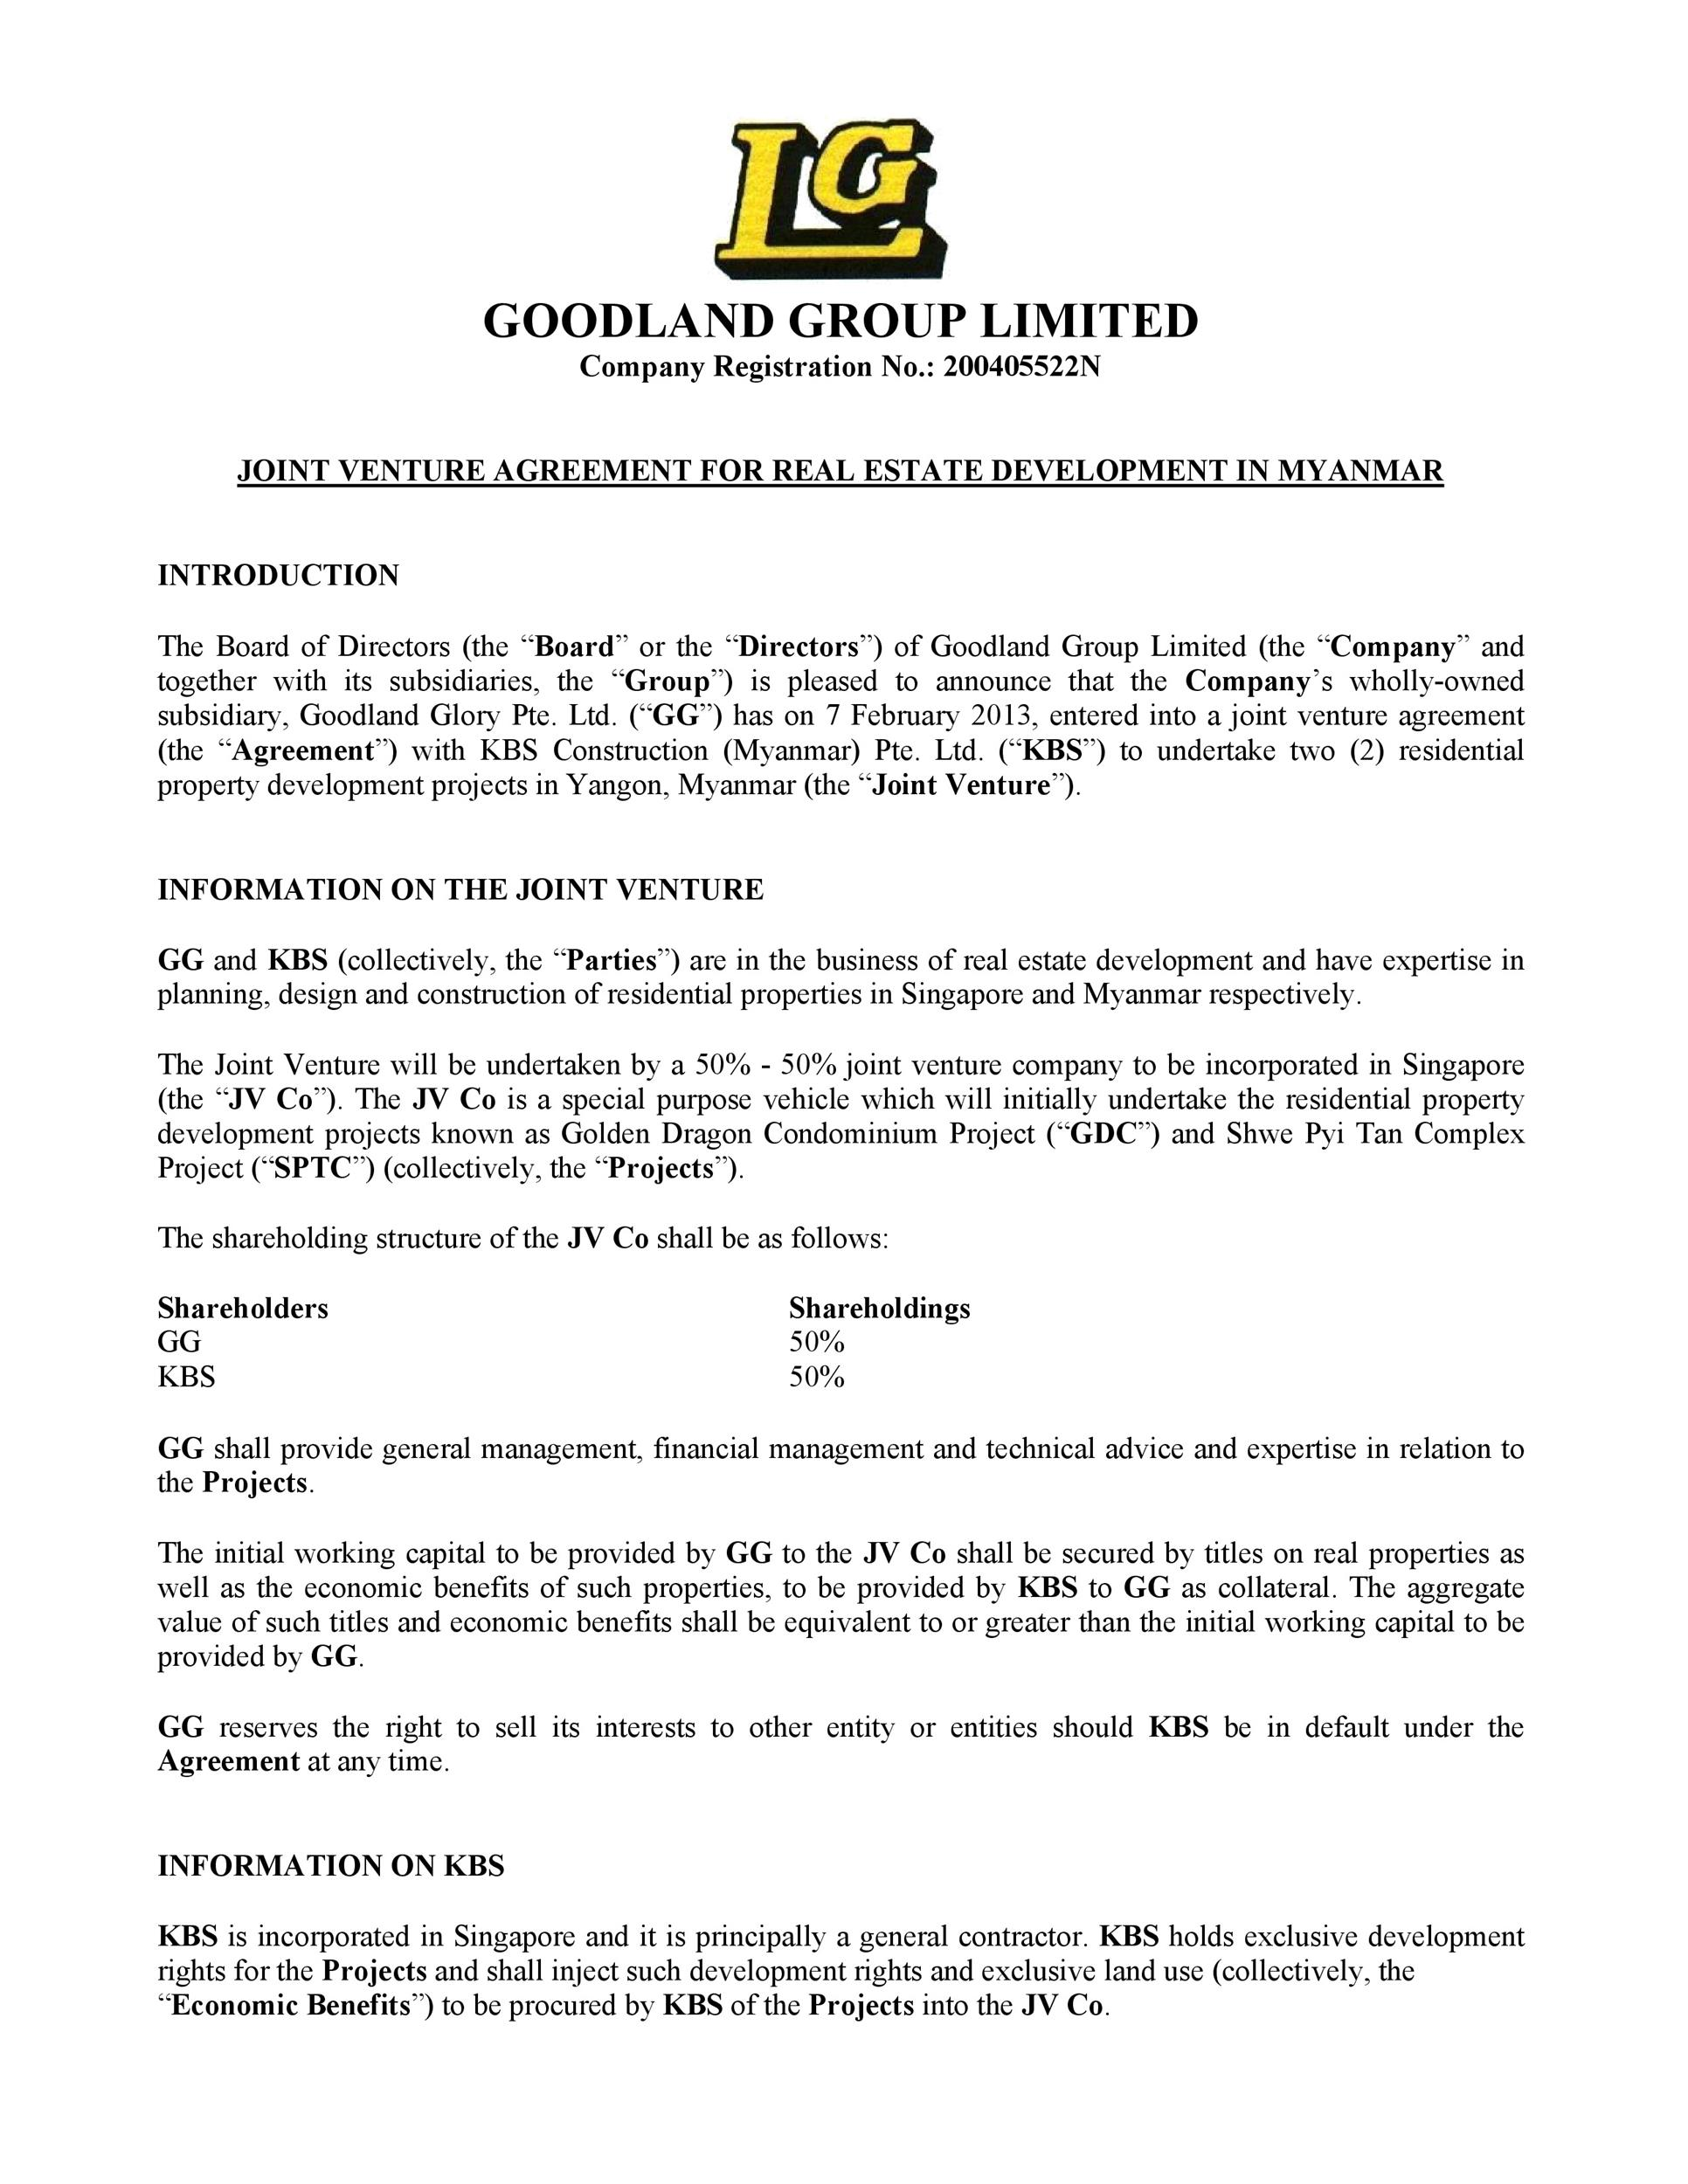 Free Joint Venture Agreement Template 46